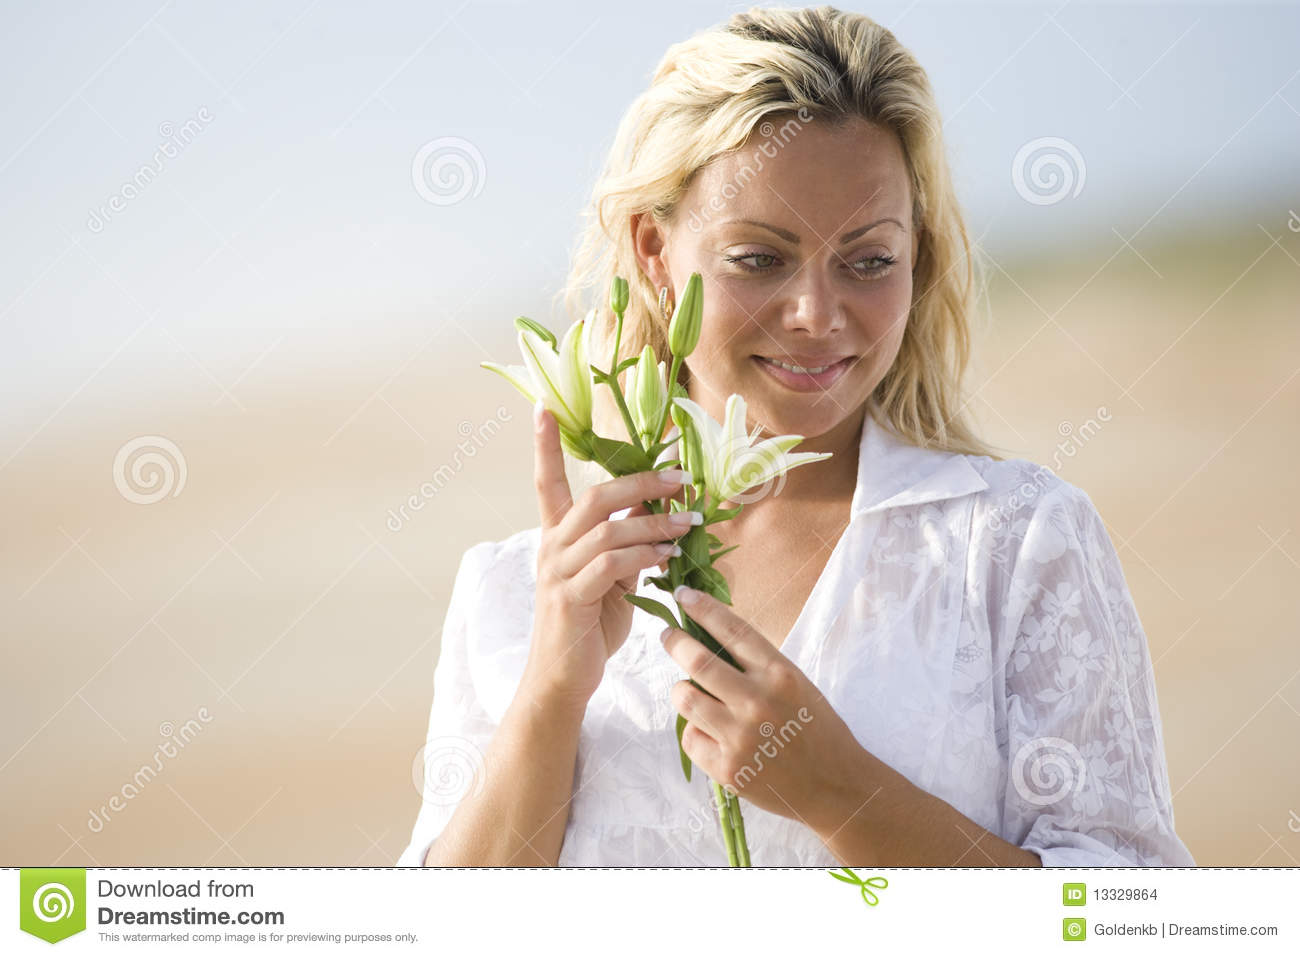 Woman wearing white on beach holding flower